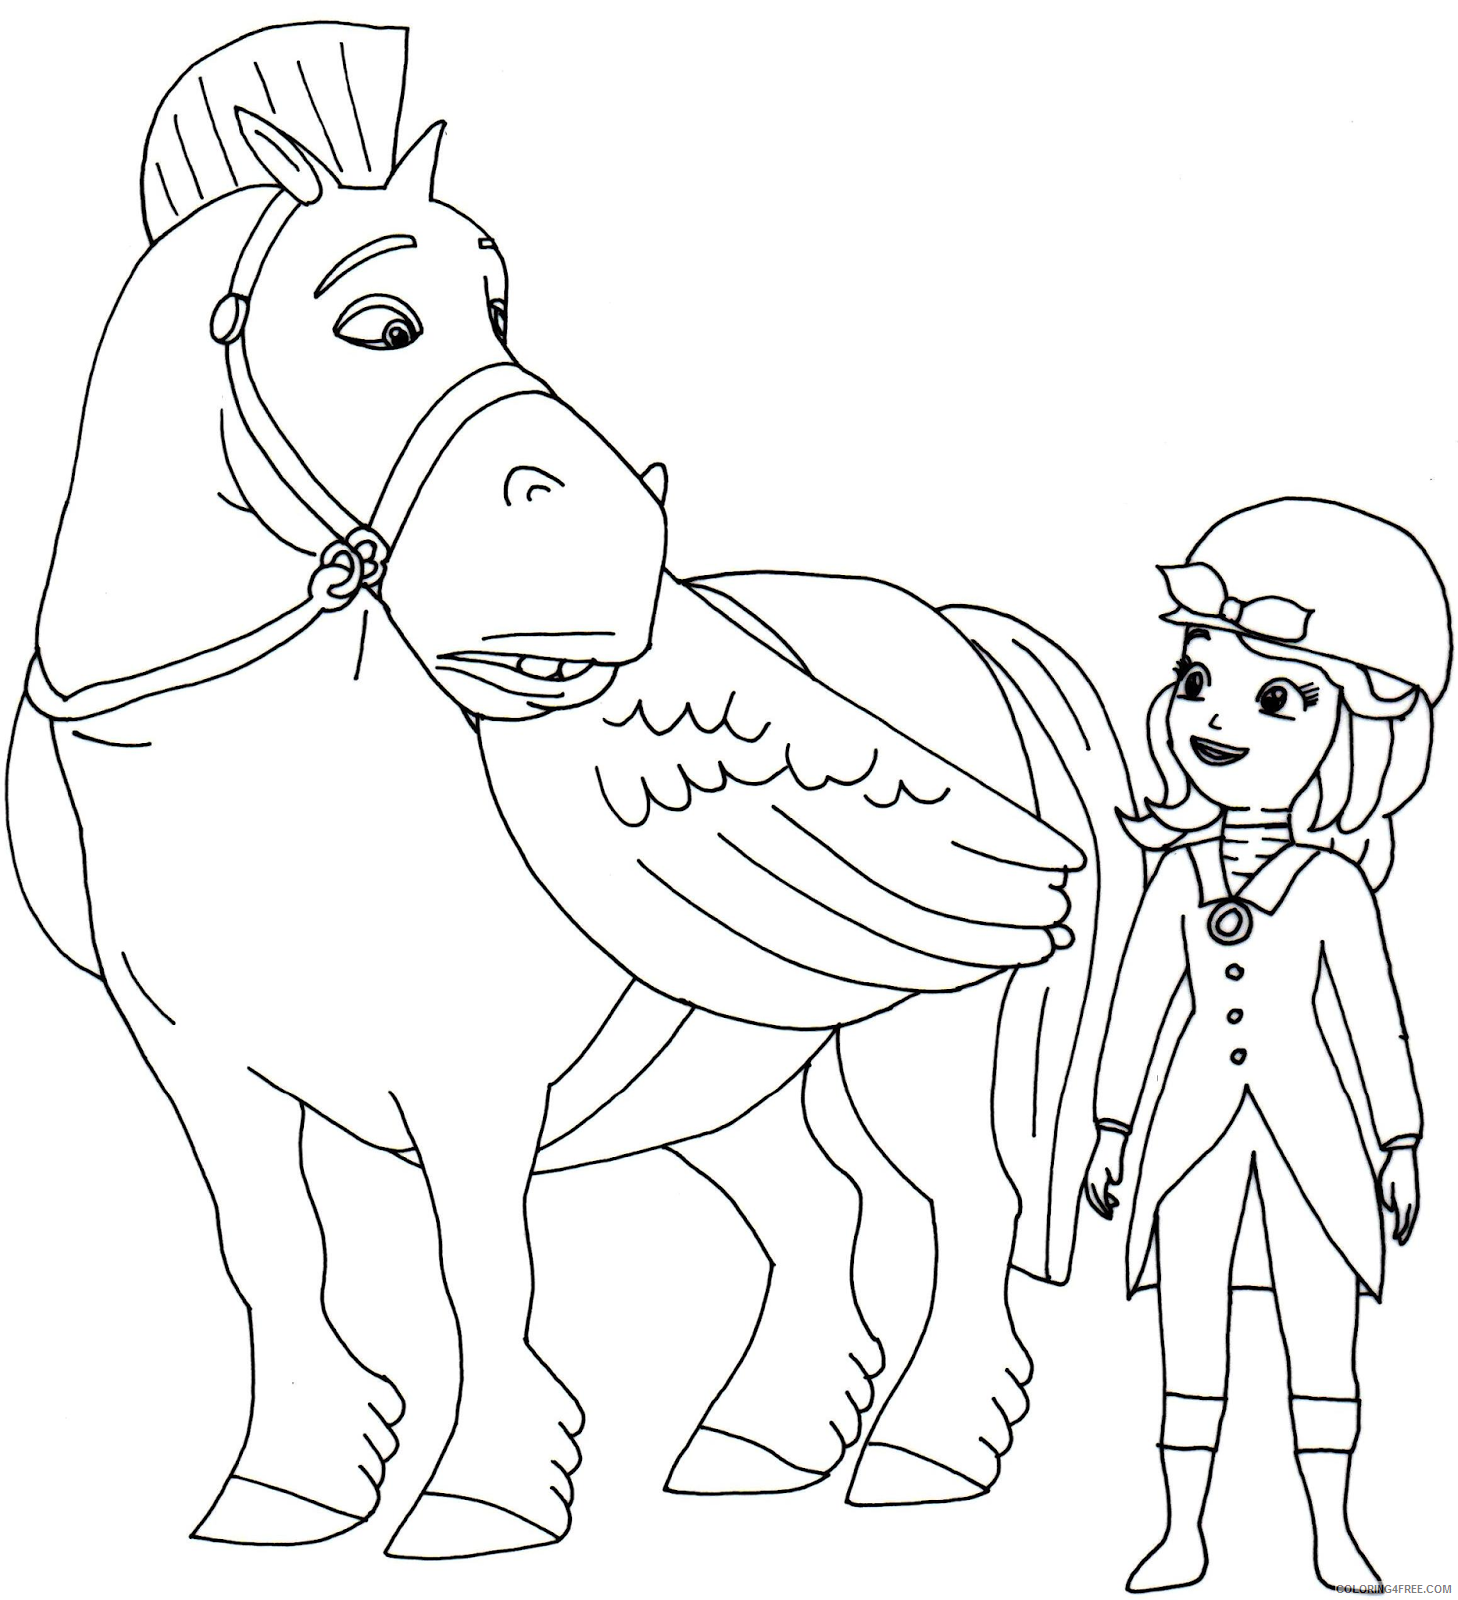 sofia the first coloring pages with minimus Coloring4free